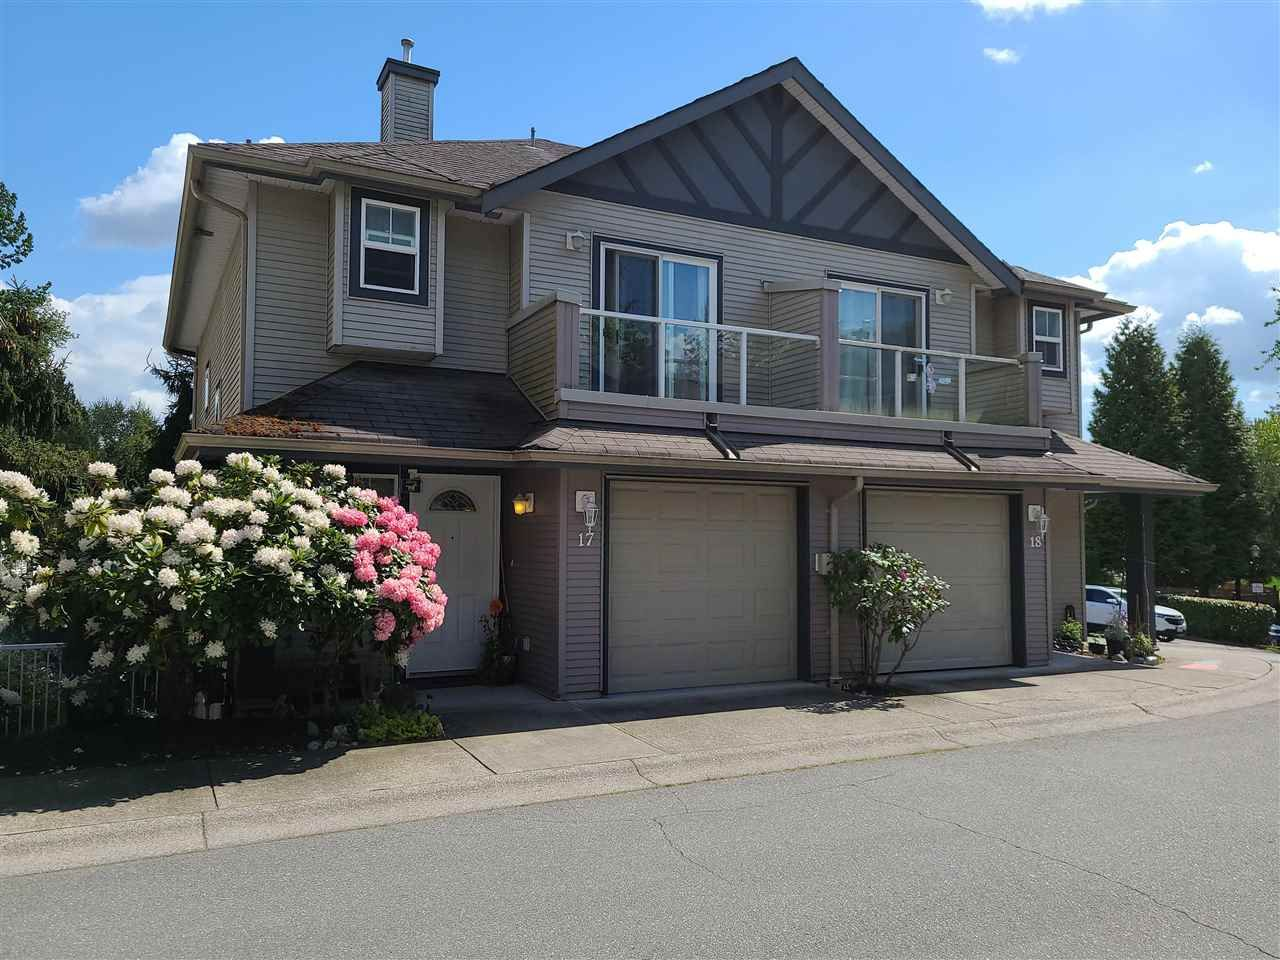 """Main Photo: 17 11229 232 Street in Maple Ridge: East Central Townhouse for sale in """"FOXFIELD"""" : MLS®# R2576848"""